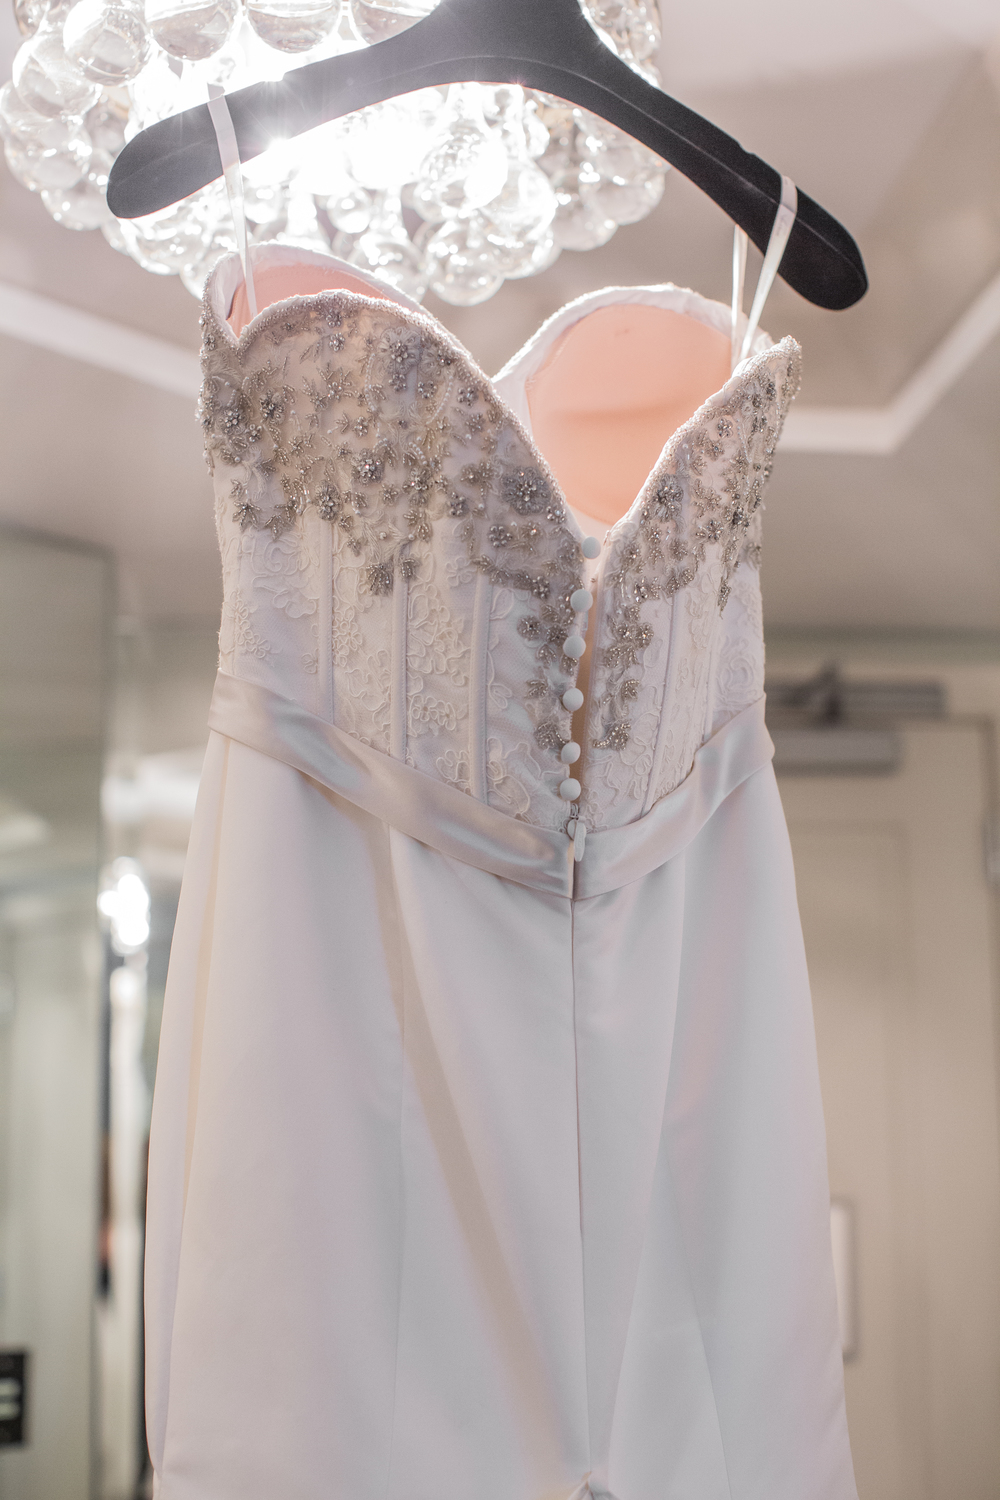 For the sports and fitness enthusiast who wanted to explore her softer, more glamorous side, we turned to Victor Harper.  The intricate embroidery over the lace corset, the satin trim, and the mermaid style gave this dress an old-Hollywood feel.  Michelle Tran.  April 2014.  Photo by Elle Gagiano.